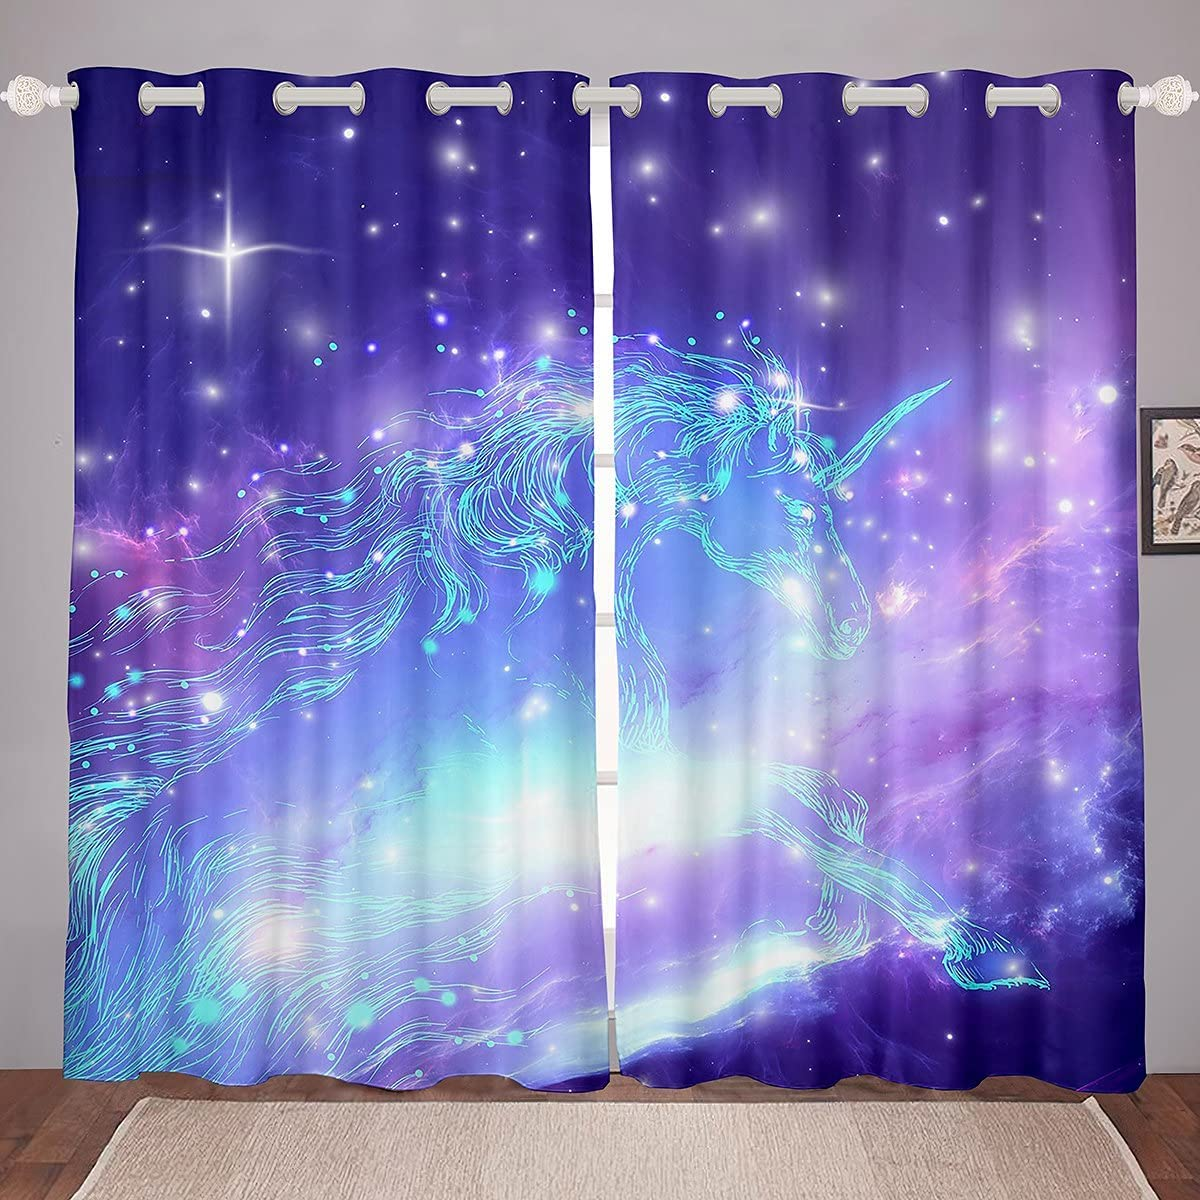 Unicorn Window 国内正規総代理店アイテム Curtains Space 早割クーポン Psychedelic